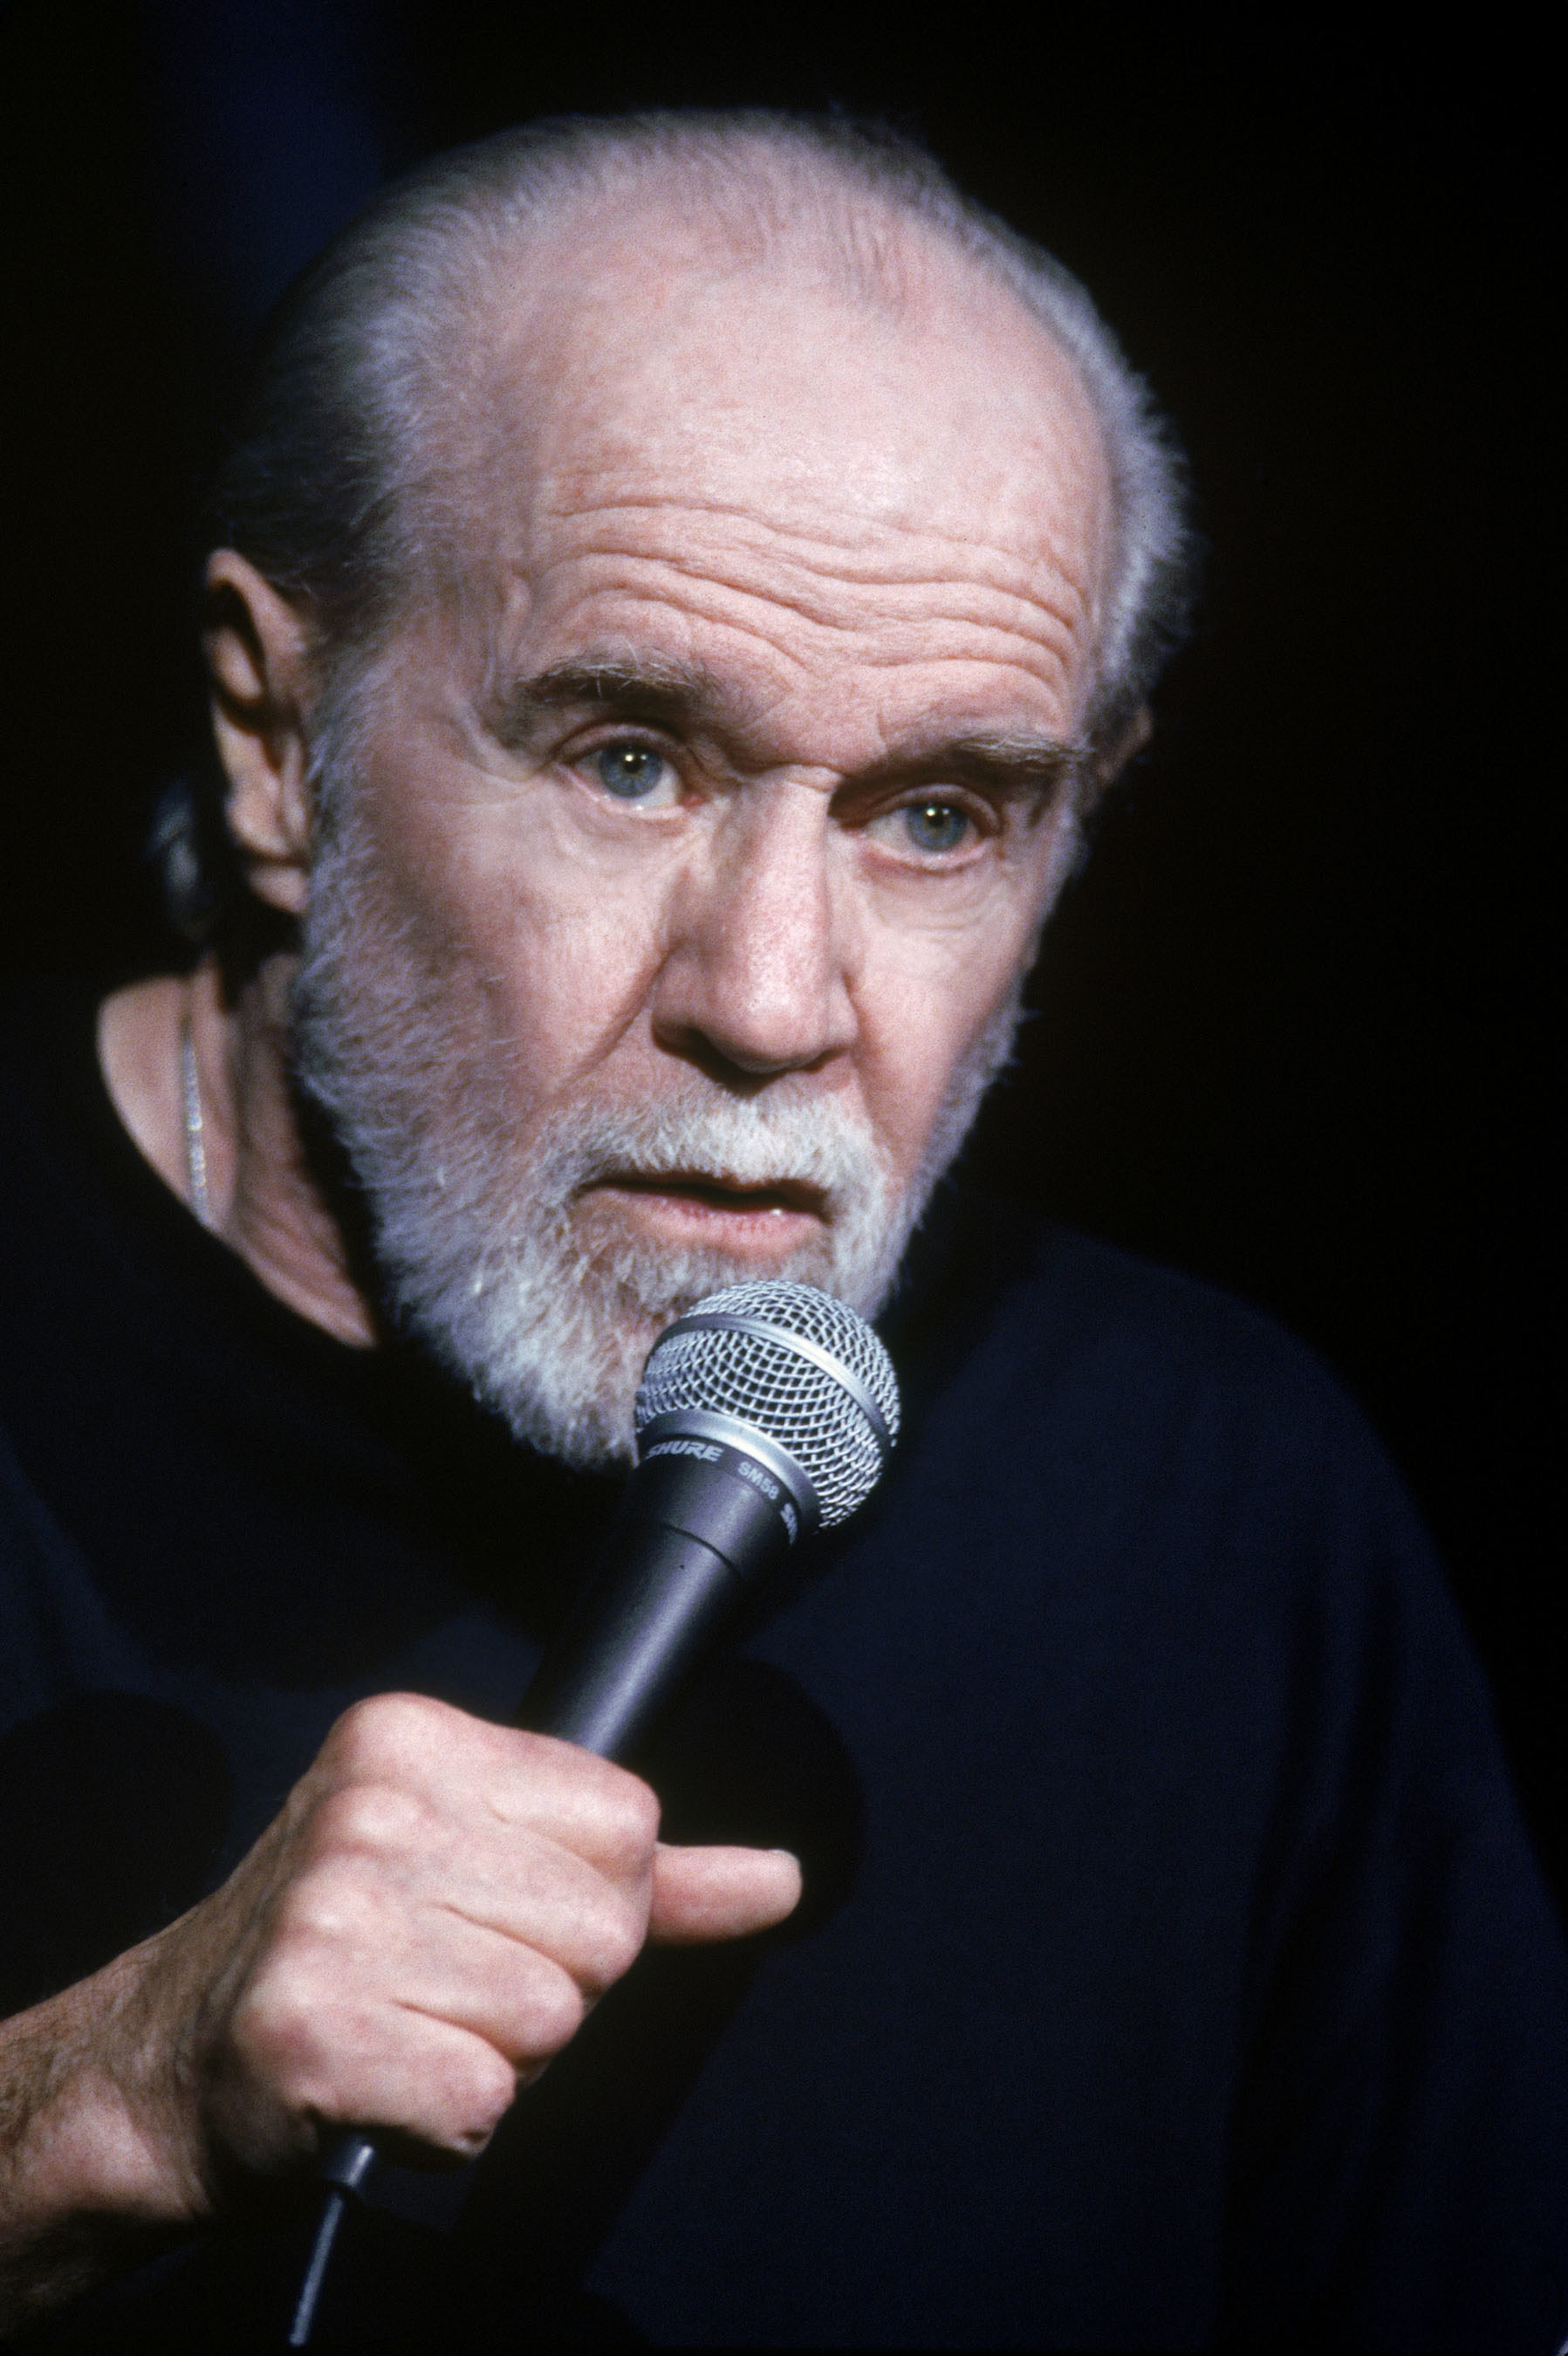 New George Carlin Album Featuring a Never Released Performance to Premiere Exclusively on SiriusXM's Comedy Greats and George Carlin Channels